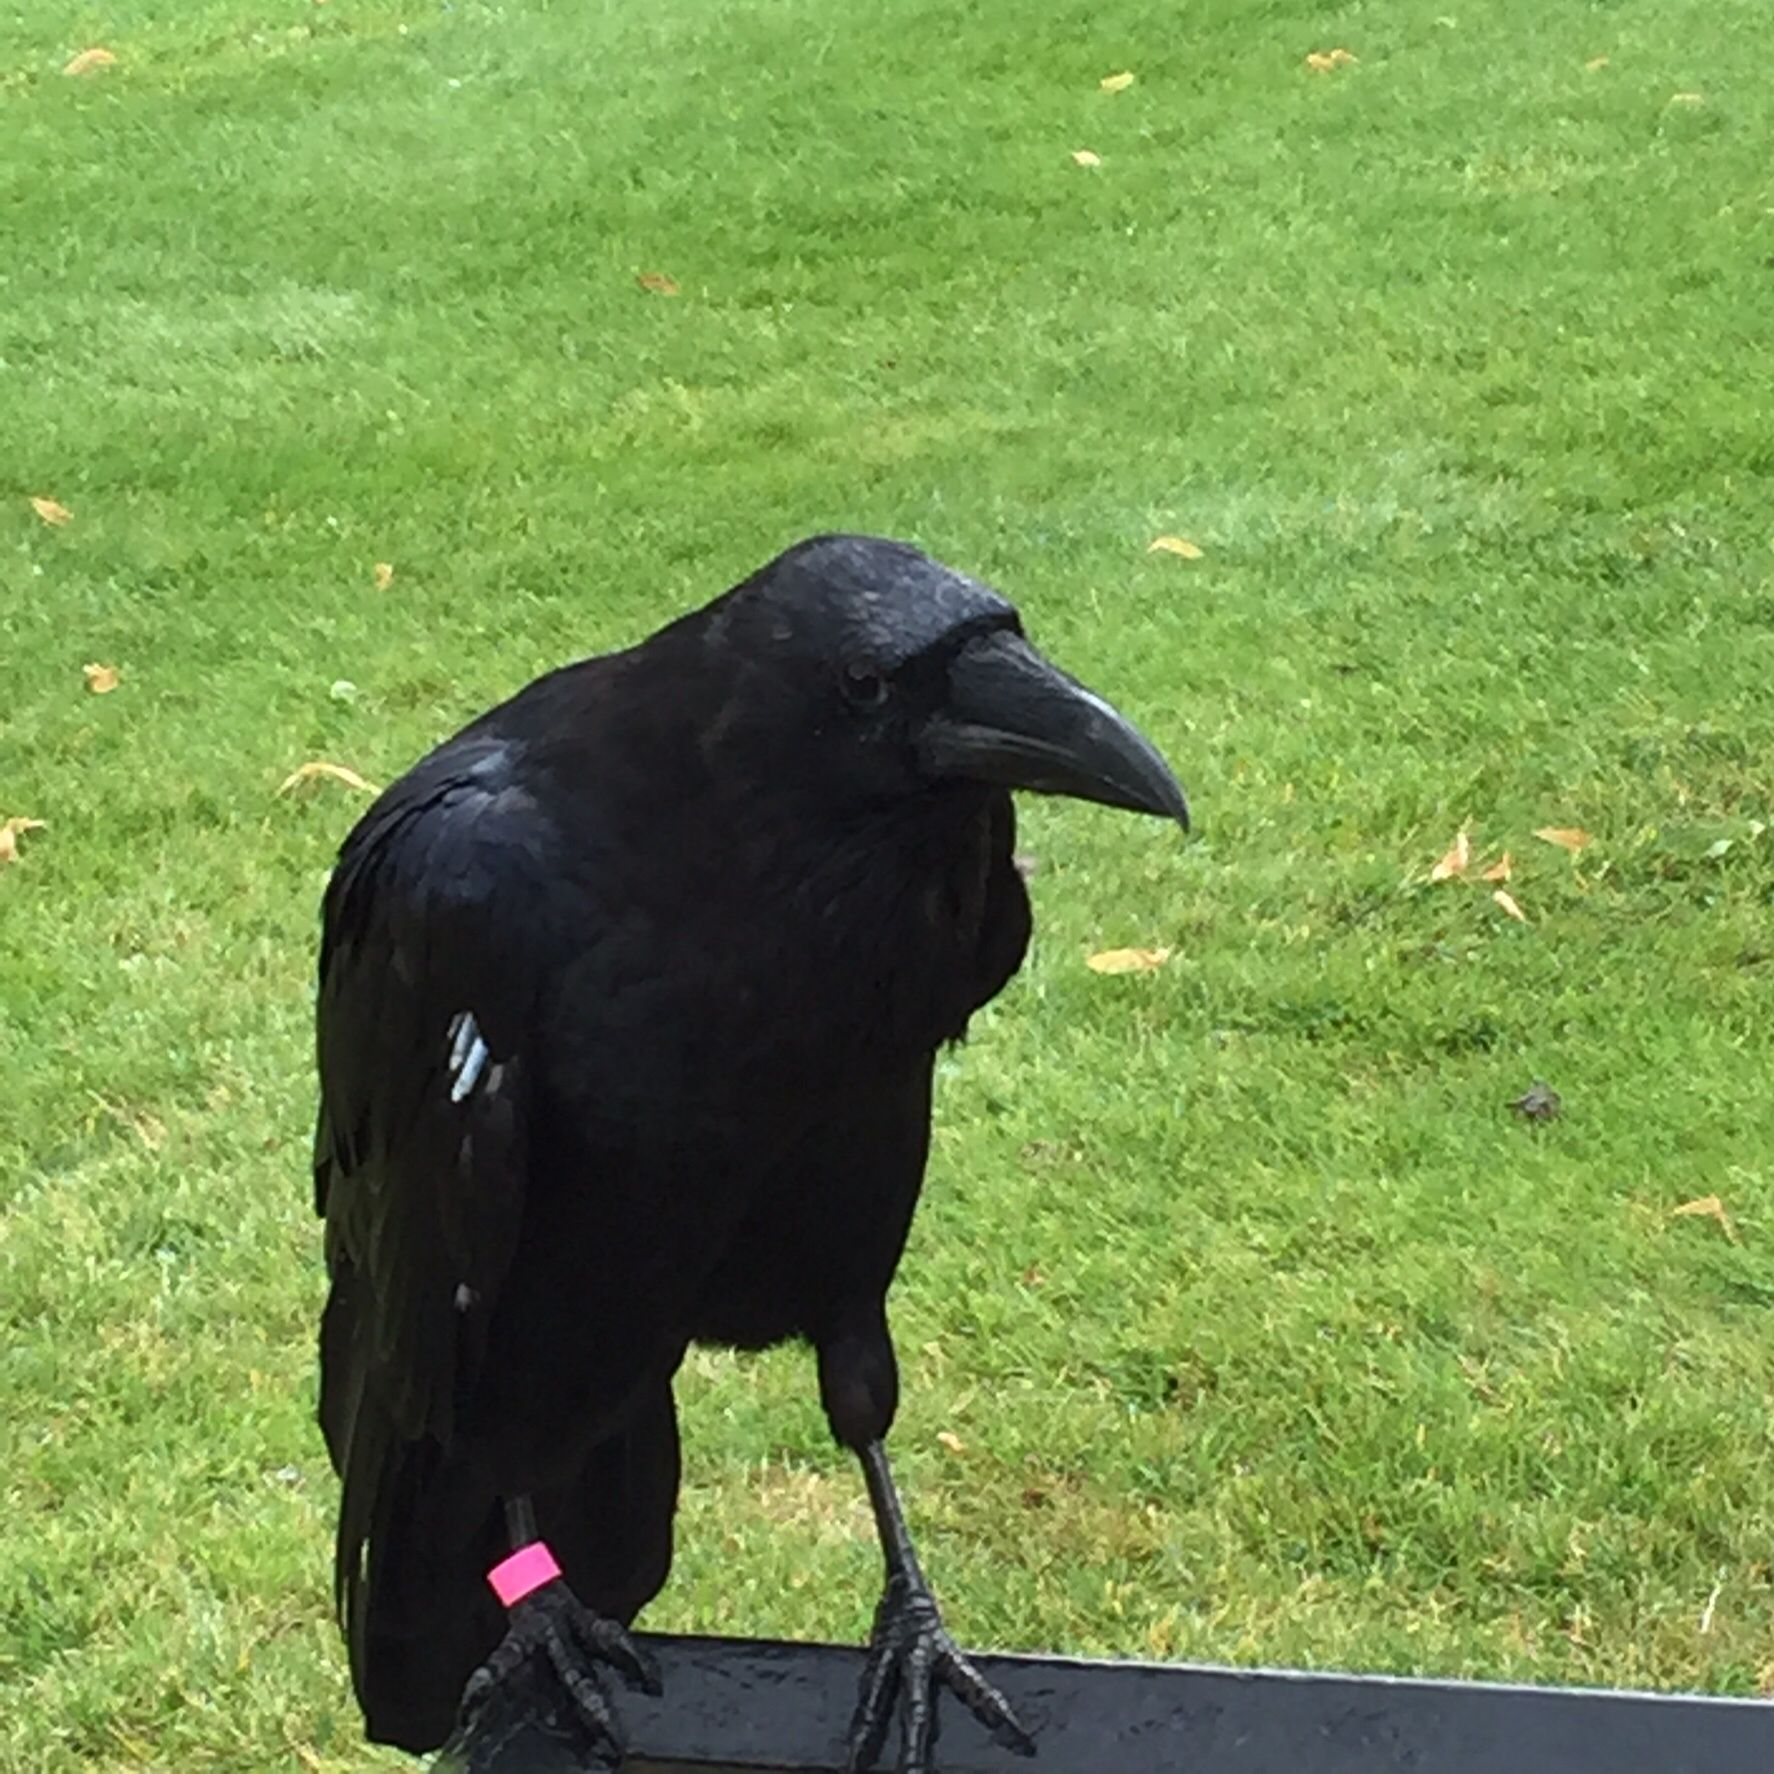 Tower of London raven.